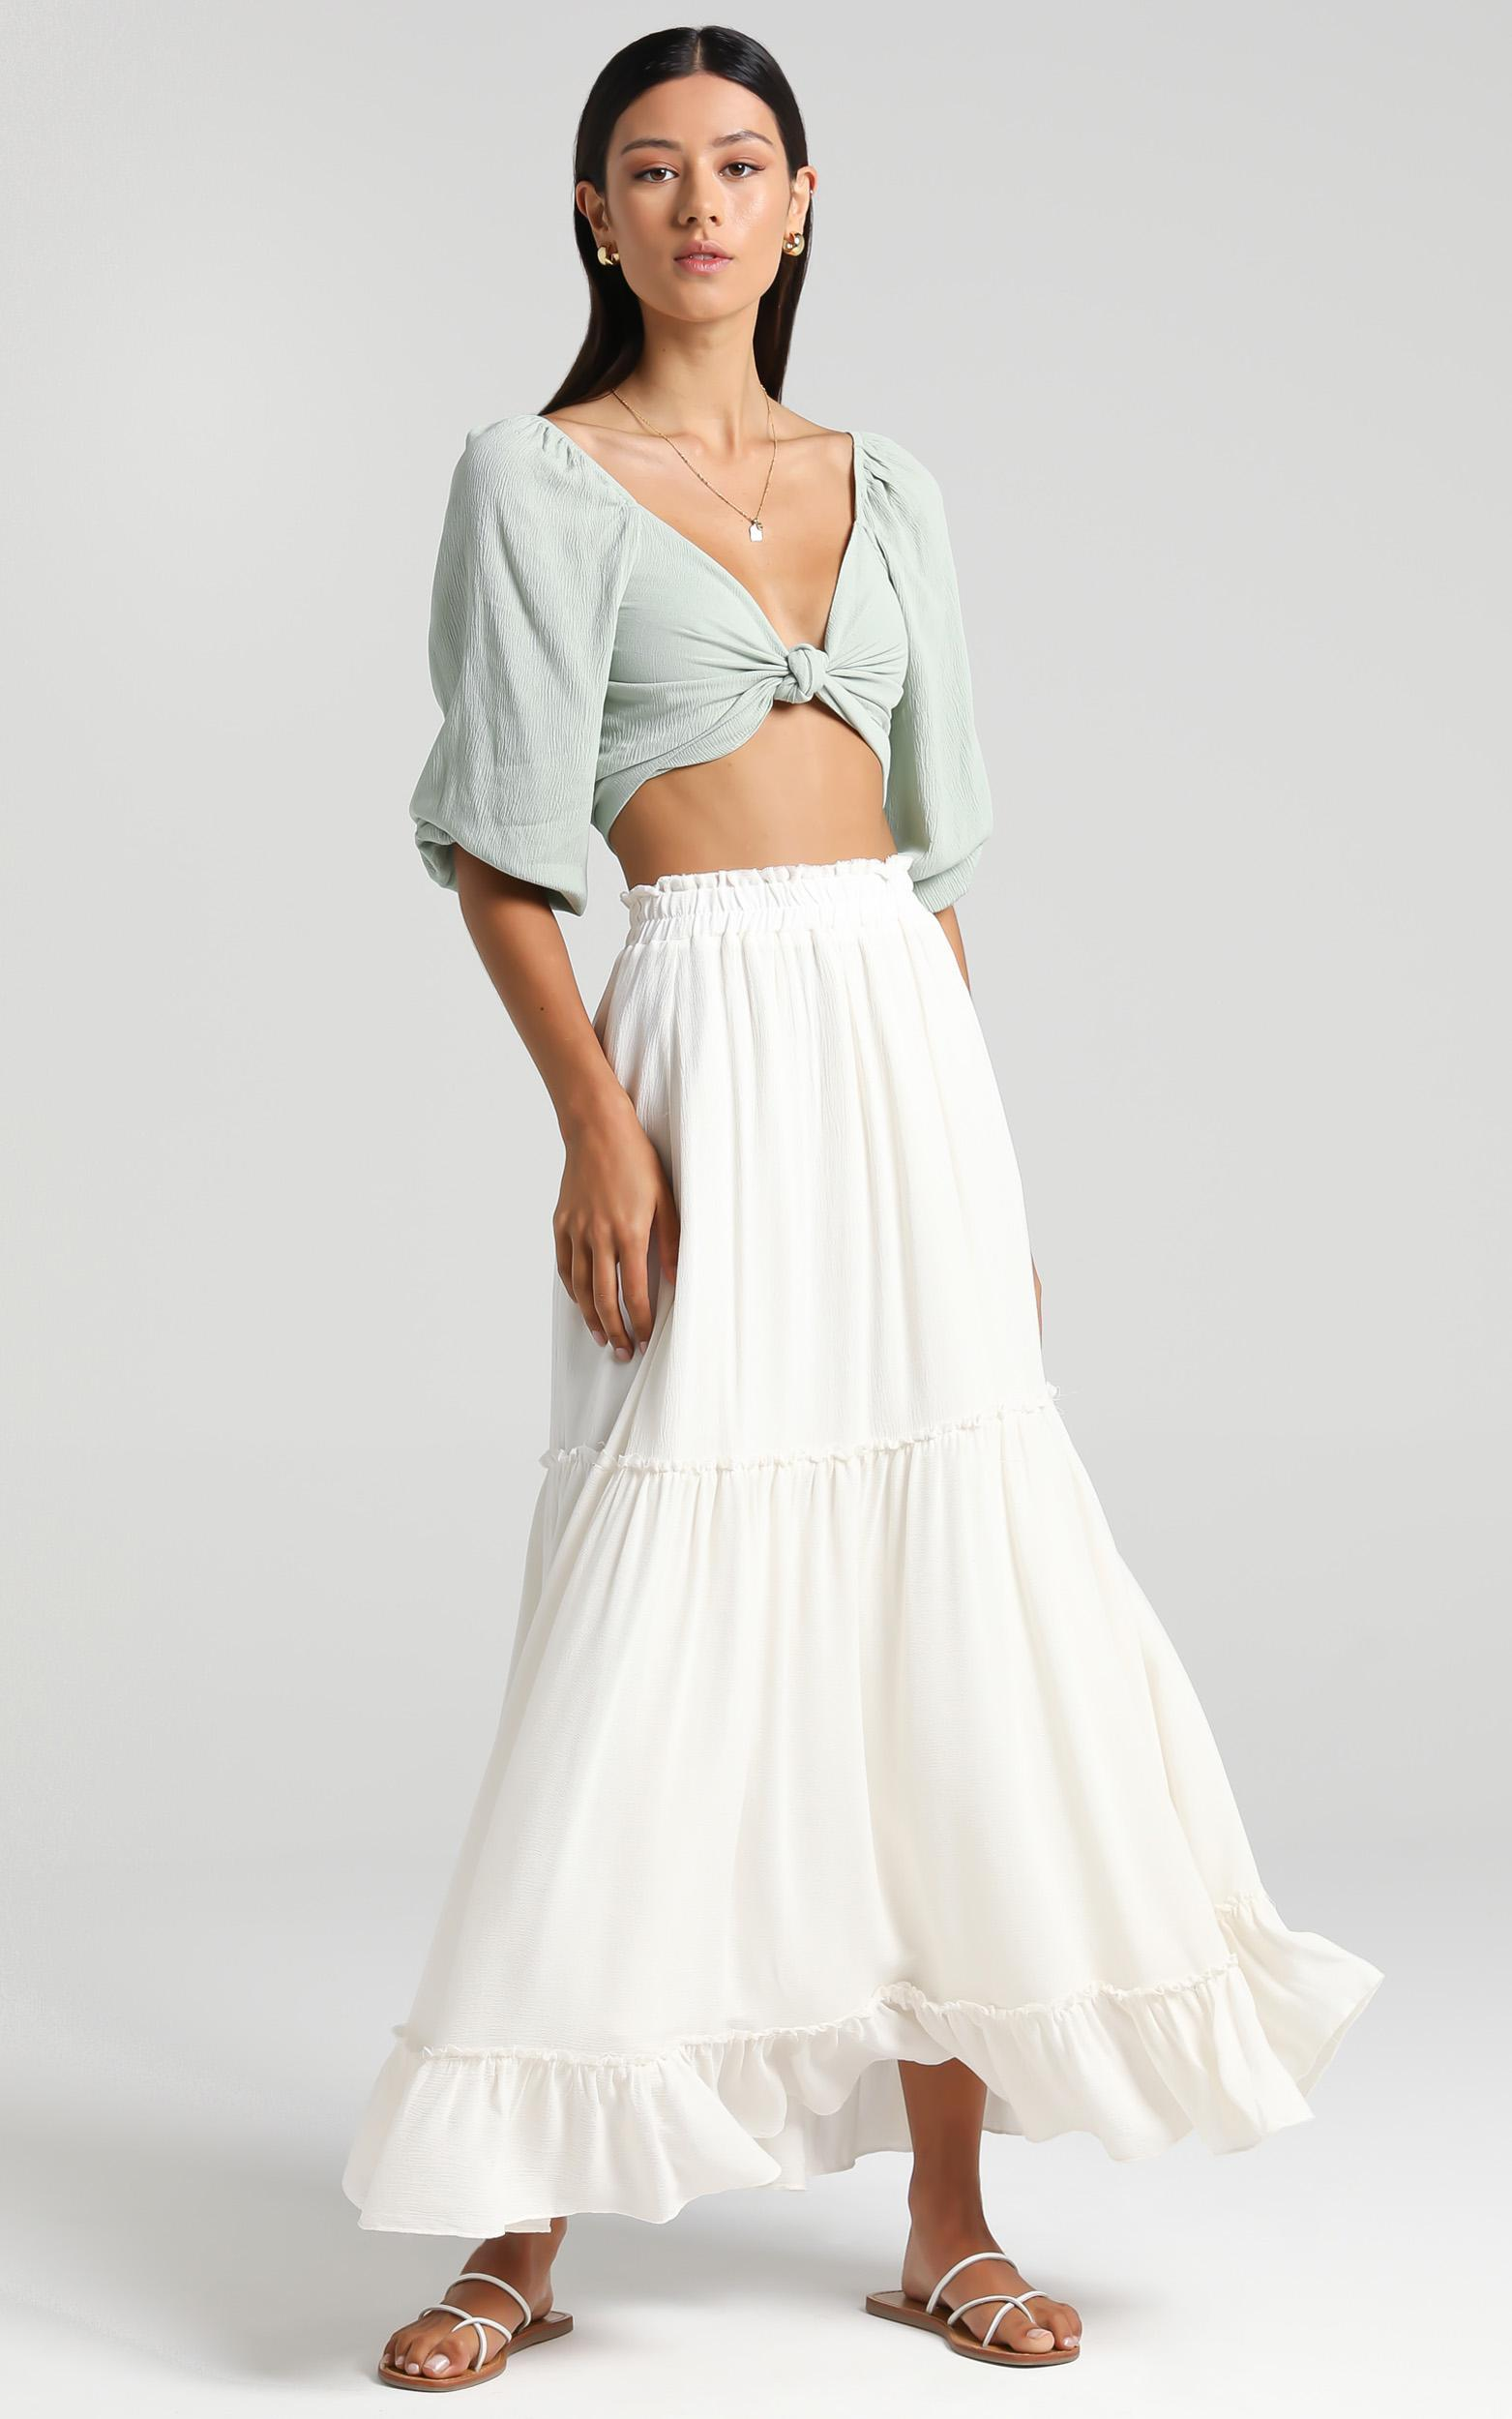 Thessy Skirt in Cream - 6 (XS), Cream, hi-res image number null